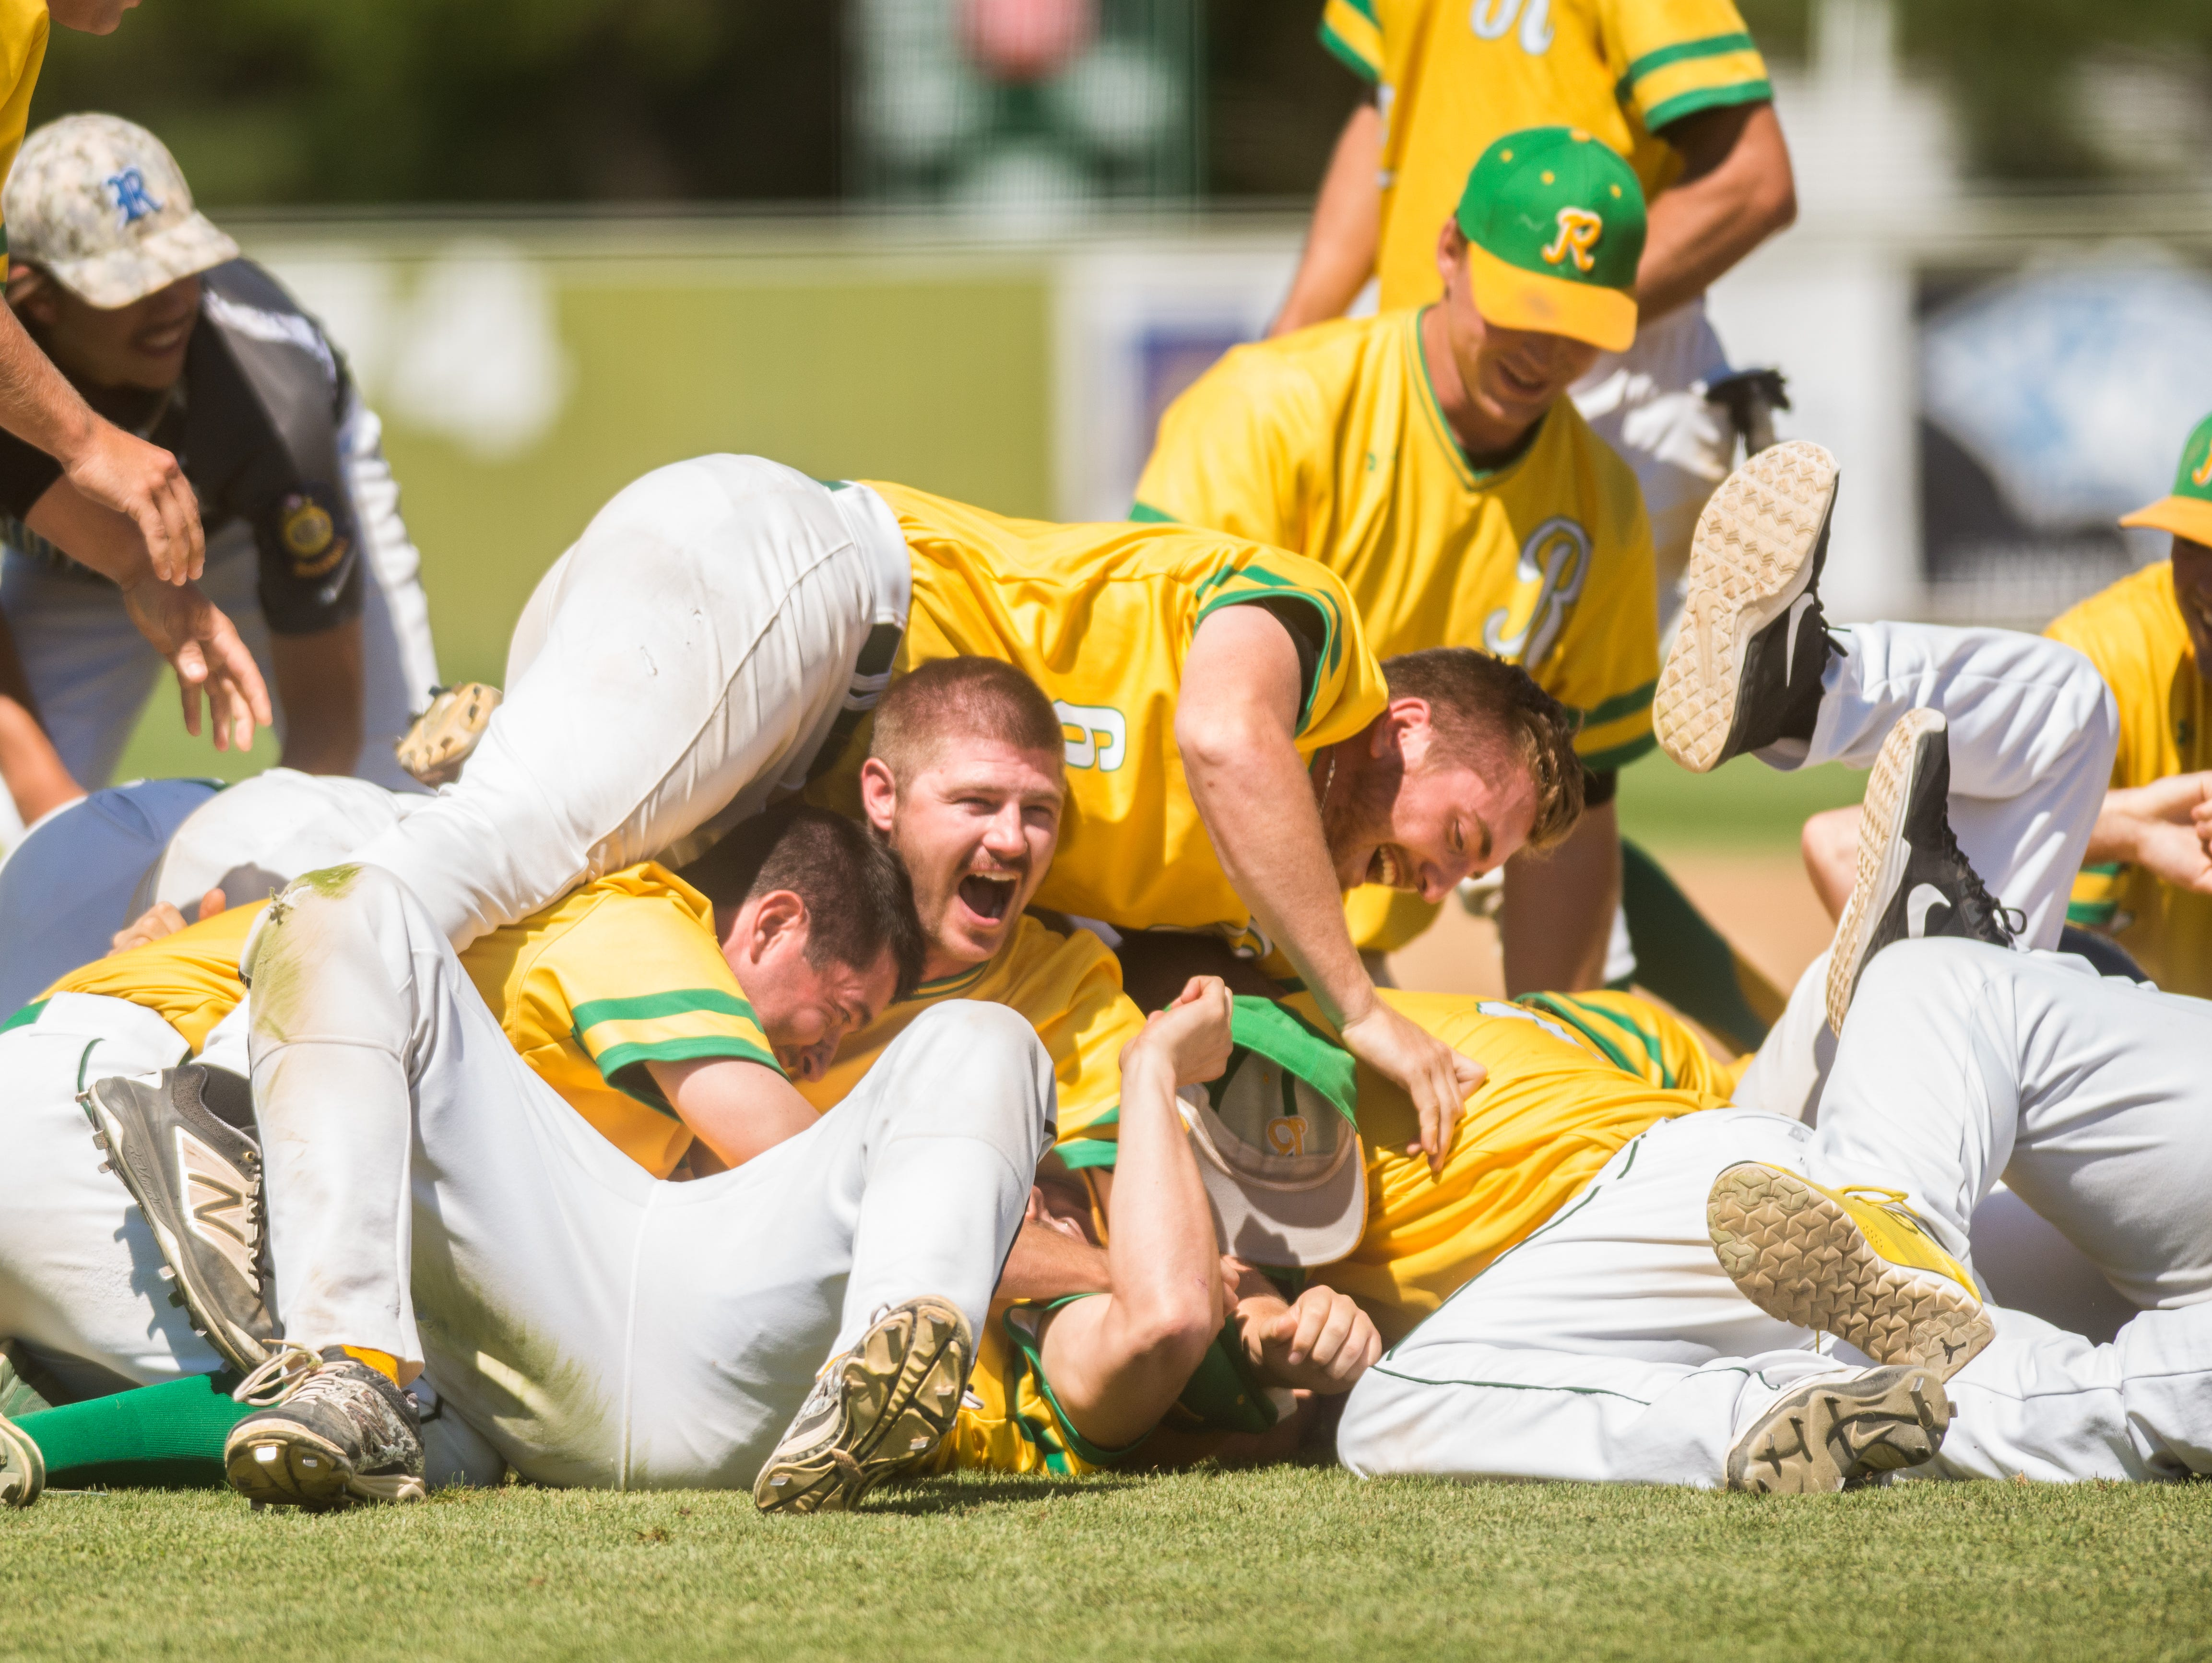 Members of the Renner Monarchs celebrate their win over the Sioux Falls Brewers at the South Dakota Class A Amateur Baseball Championship at Caldwell Park, Mitchell, S.D. The Renner Monarchs wins 6 - 5 over the Sioux Falls Brewers.